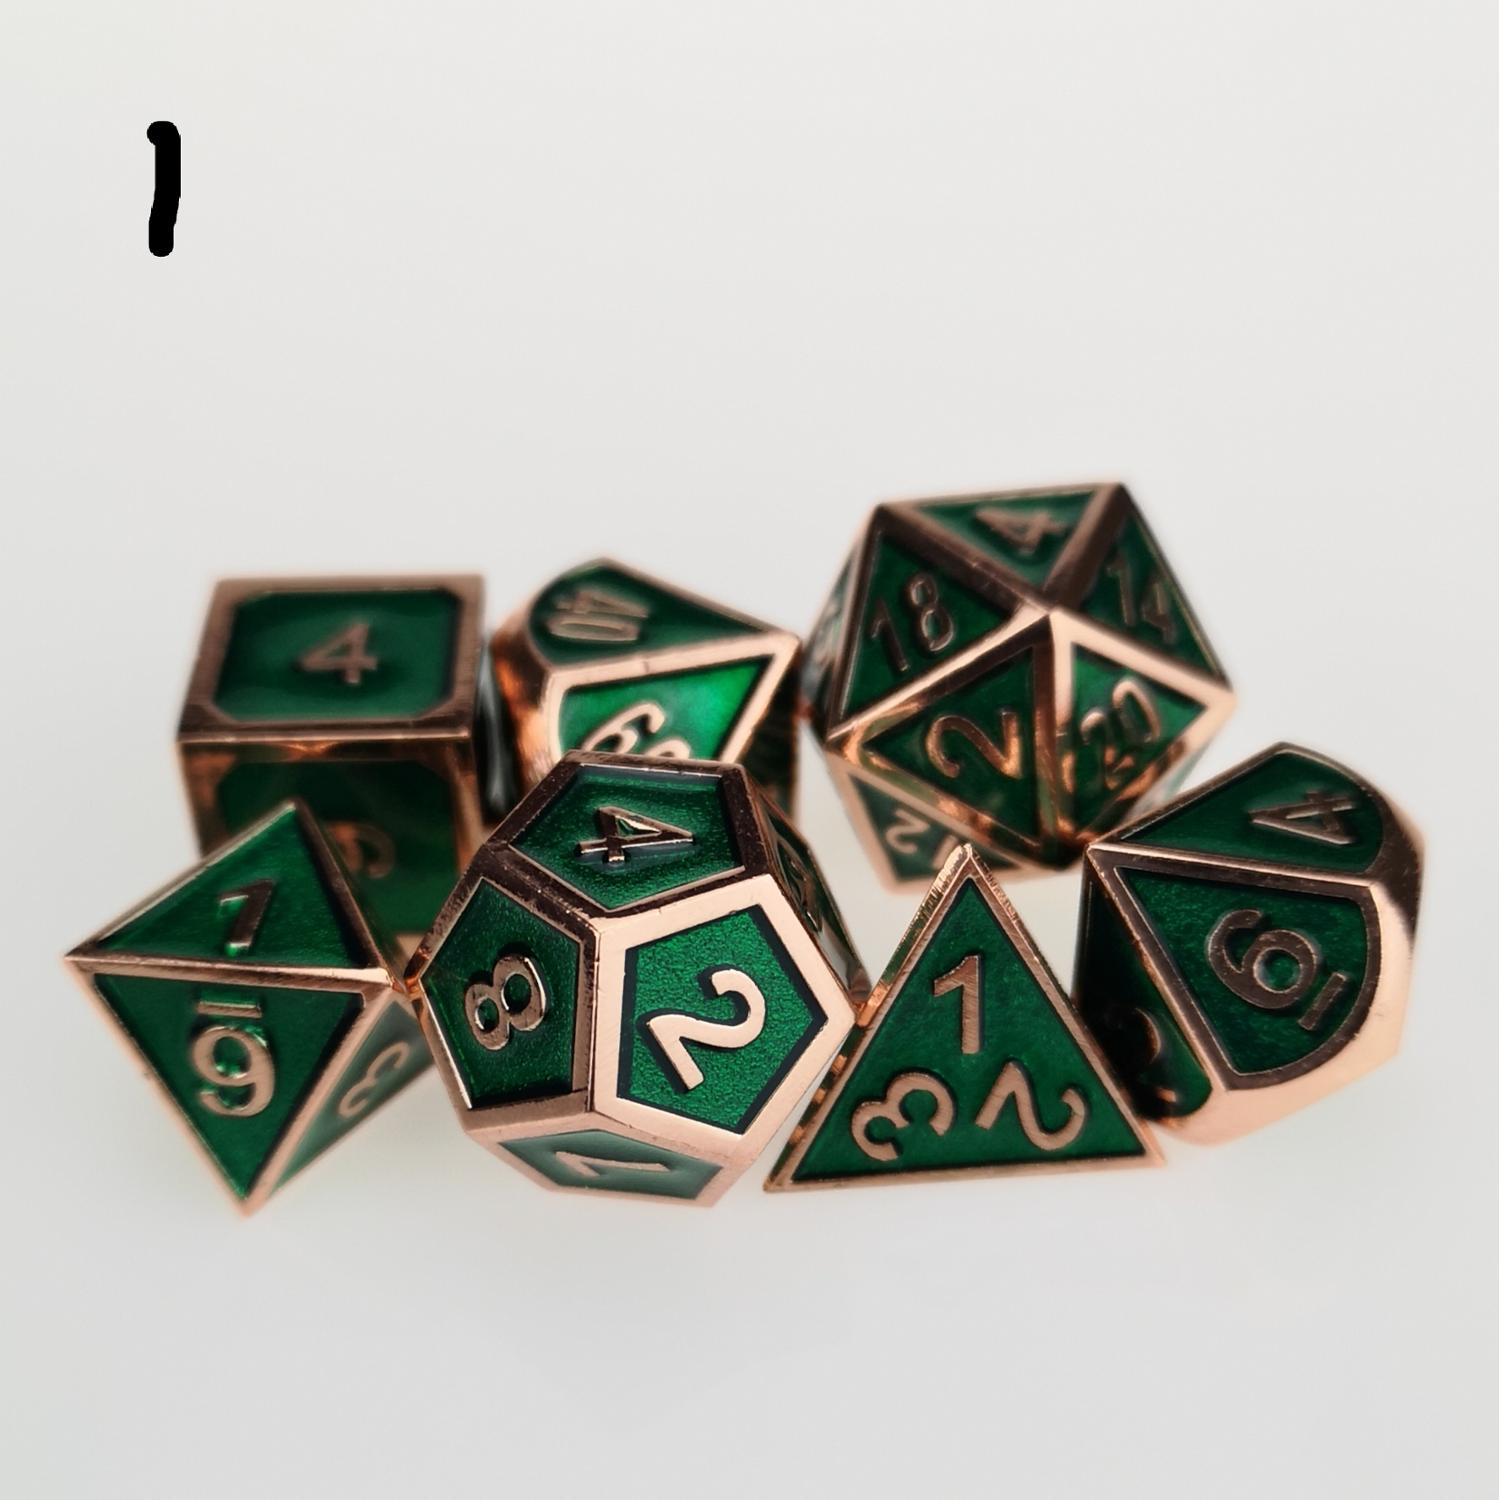 Standard 7-Die Set Green Metal Dice Collection For DND RPG MTG D&d Games